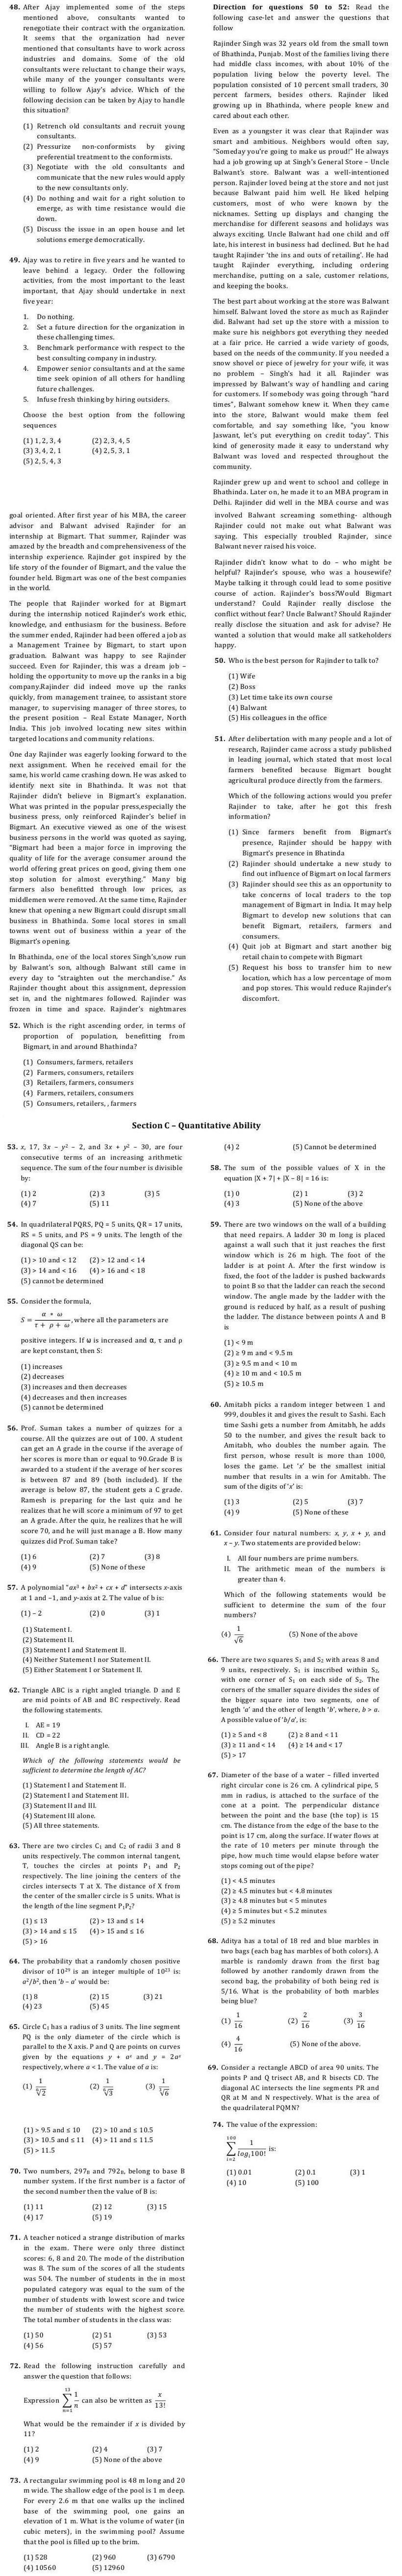 XAT 2014 Question Paper with Solutions